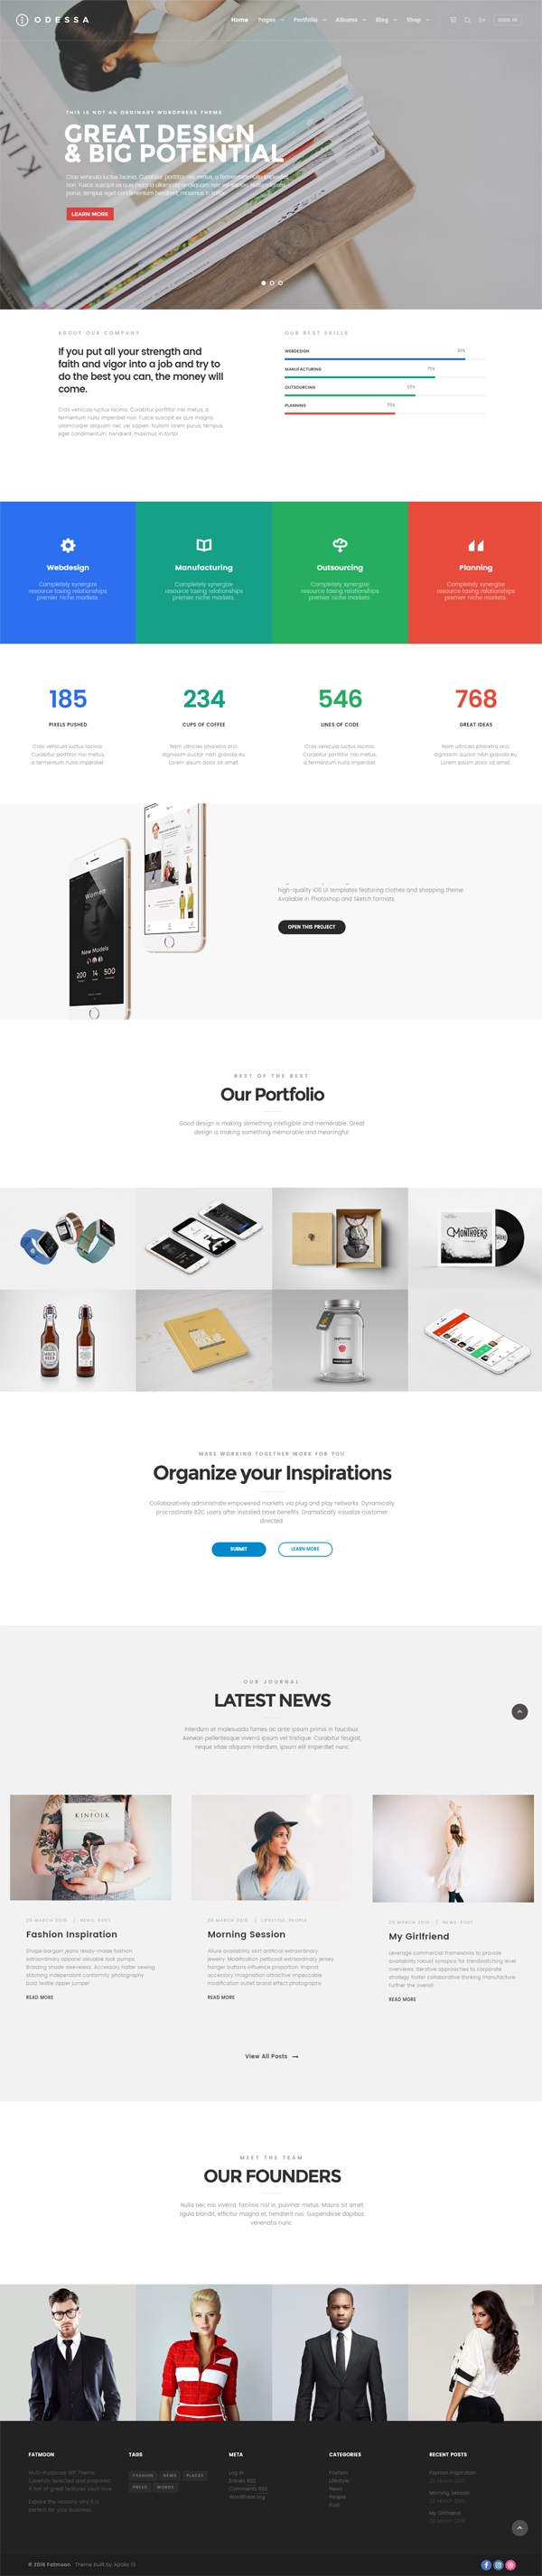 FatMoon - Creative & Photography Multi-Purpose Theme